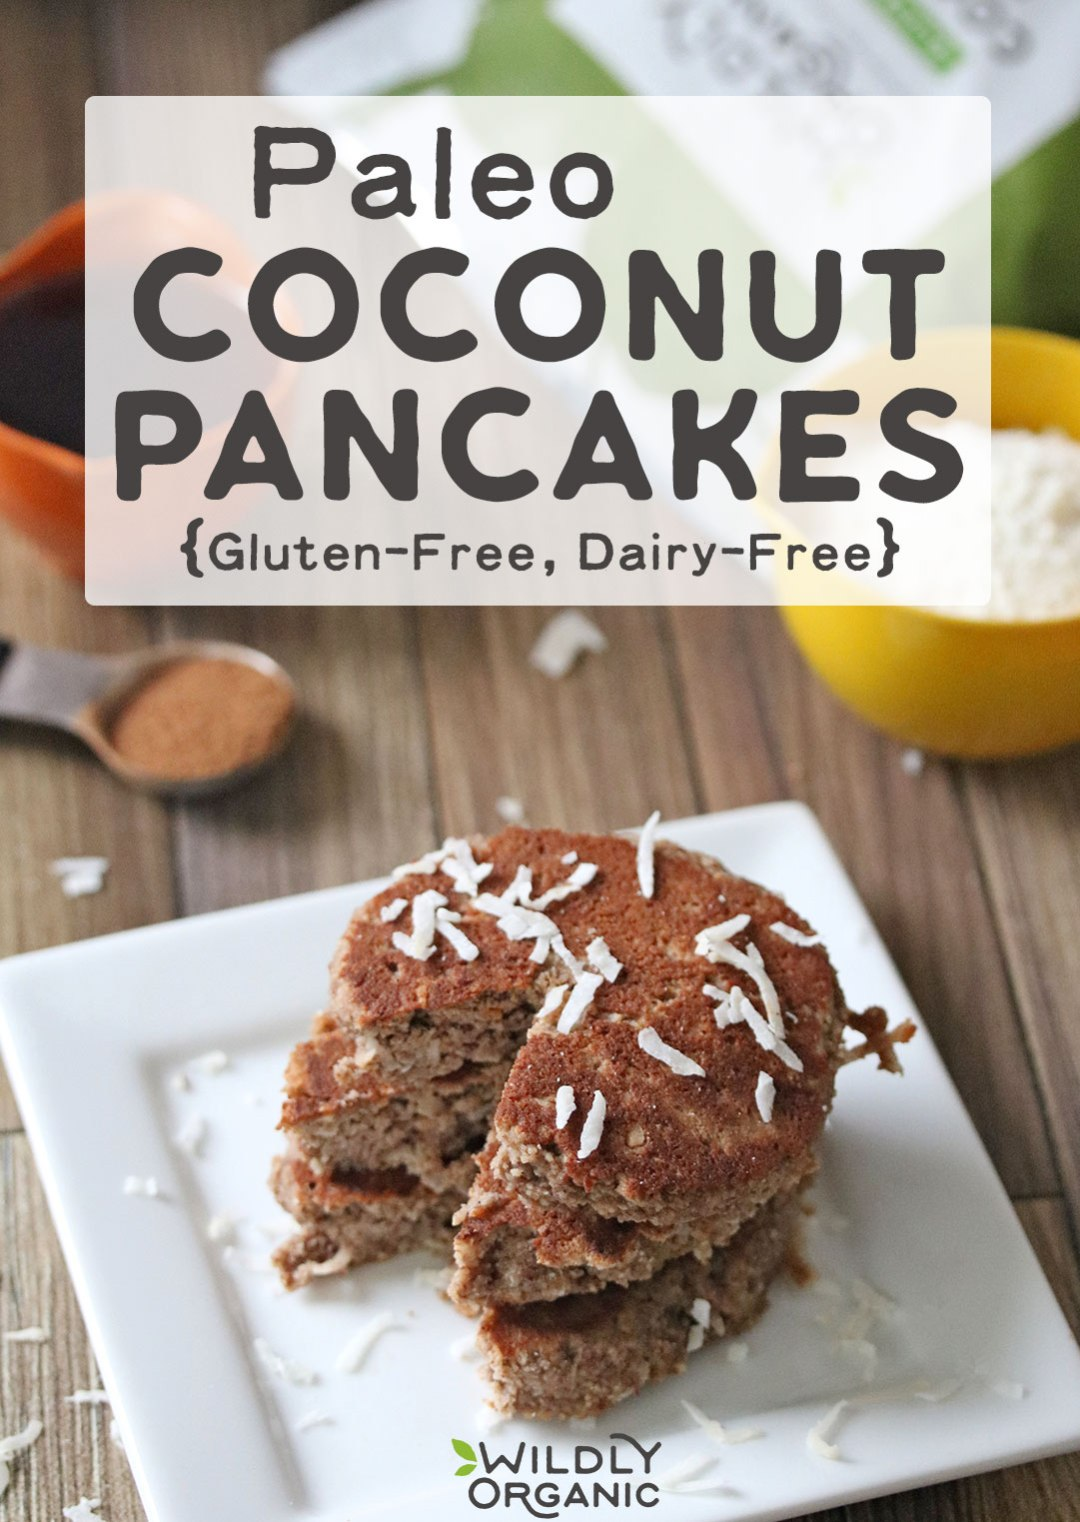 Photo of paleo coconut pancakes on a plate, with coconut sprinkled on top